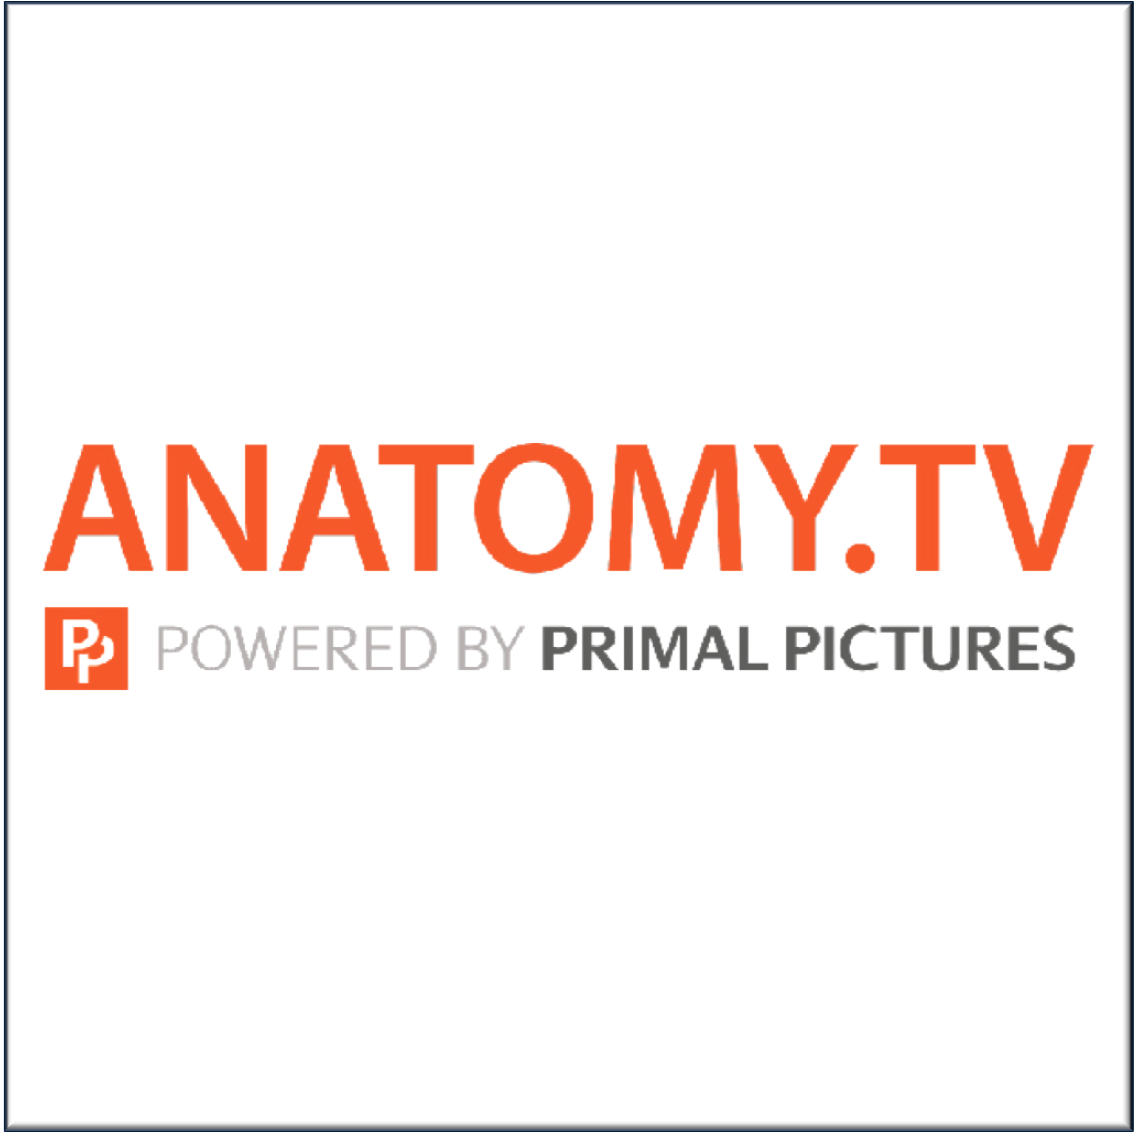 TDS Anatomy.TV logo